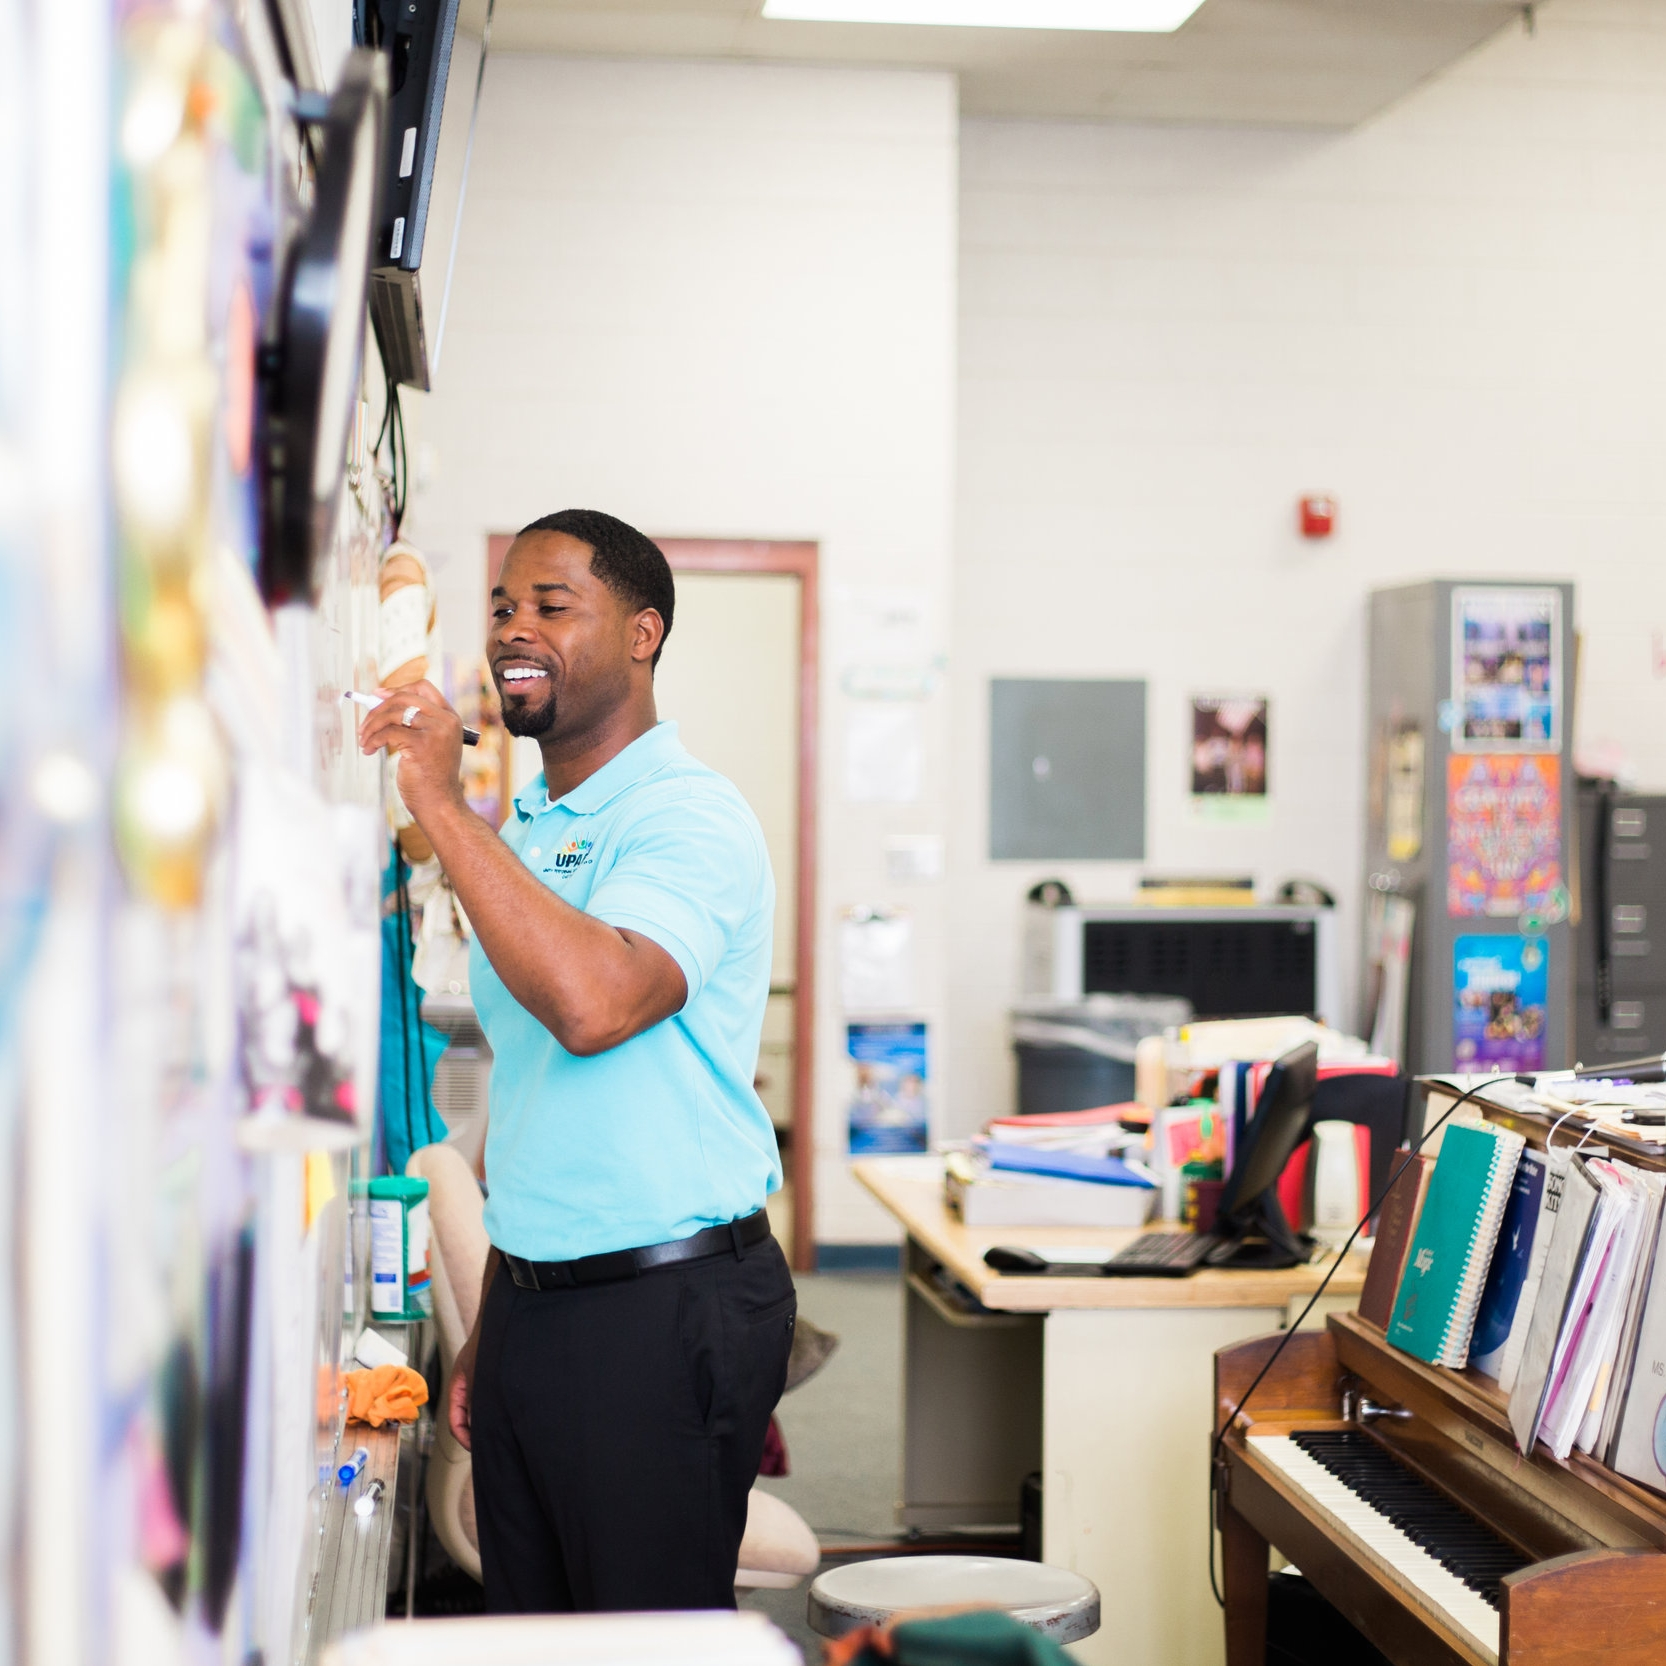 The UNITY Project    Project Leader:Marcellus Barnes  The UNITY Project seeks to fill those crucial after-school hours when students typically find trouble because of boredom, working parents, and peer pressure. They realize that since many of our schools no longer have arts educators, students who are not interested in sports do not have an outlet to learn a skill and showcase their talents. The UNITY Project offers high quality voice and music lessons to underserved youth in Orchard Knob, Tyner, and Brainerd who would not otherwise get the chance to explore their talents.